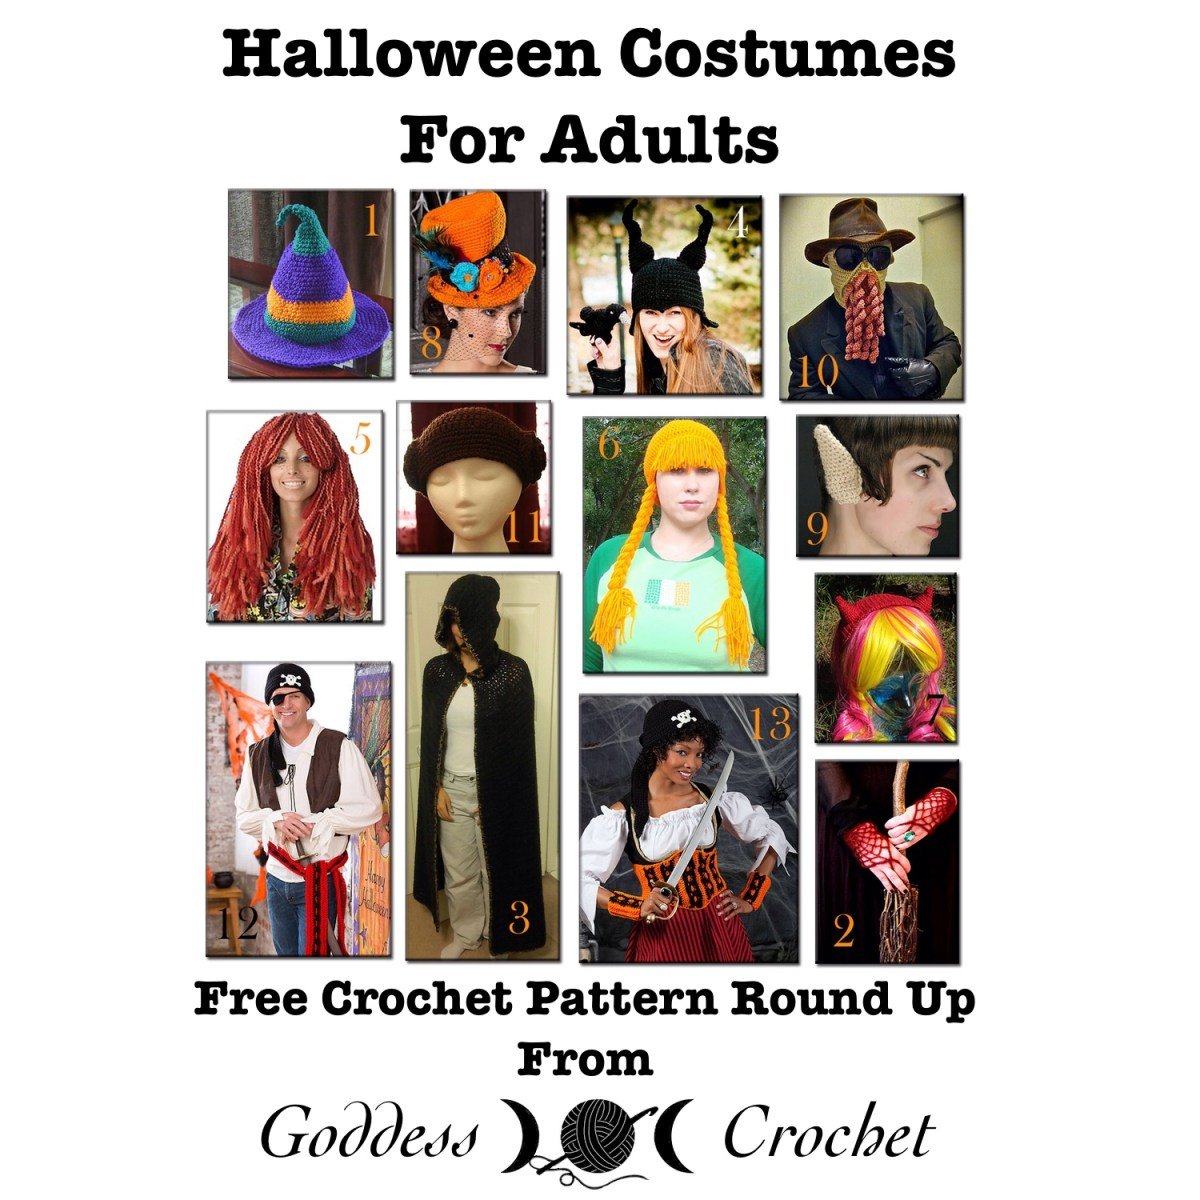 Halloween costumes for adults free crochet pattern round up halloween costumes for adults free crochet pattern round up goddess crochet bankloansurffo Image collections